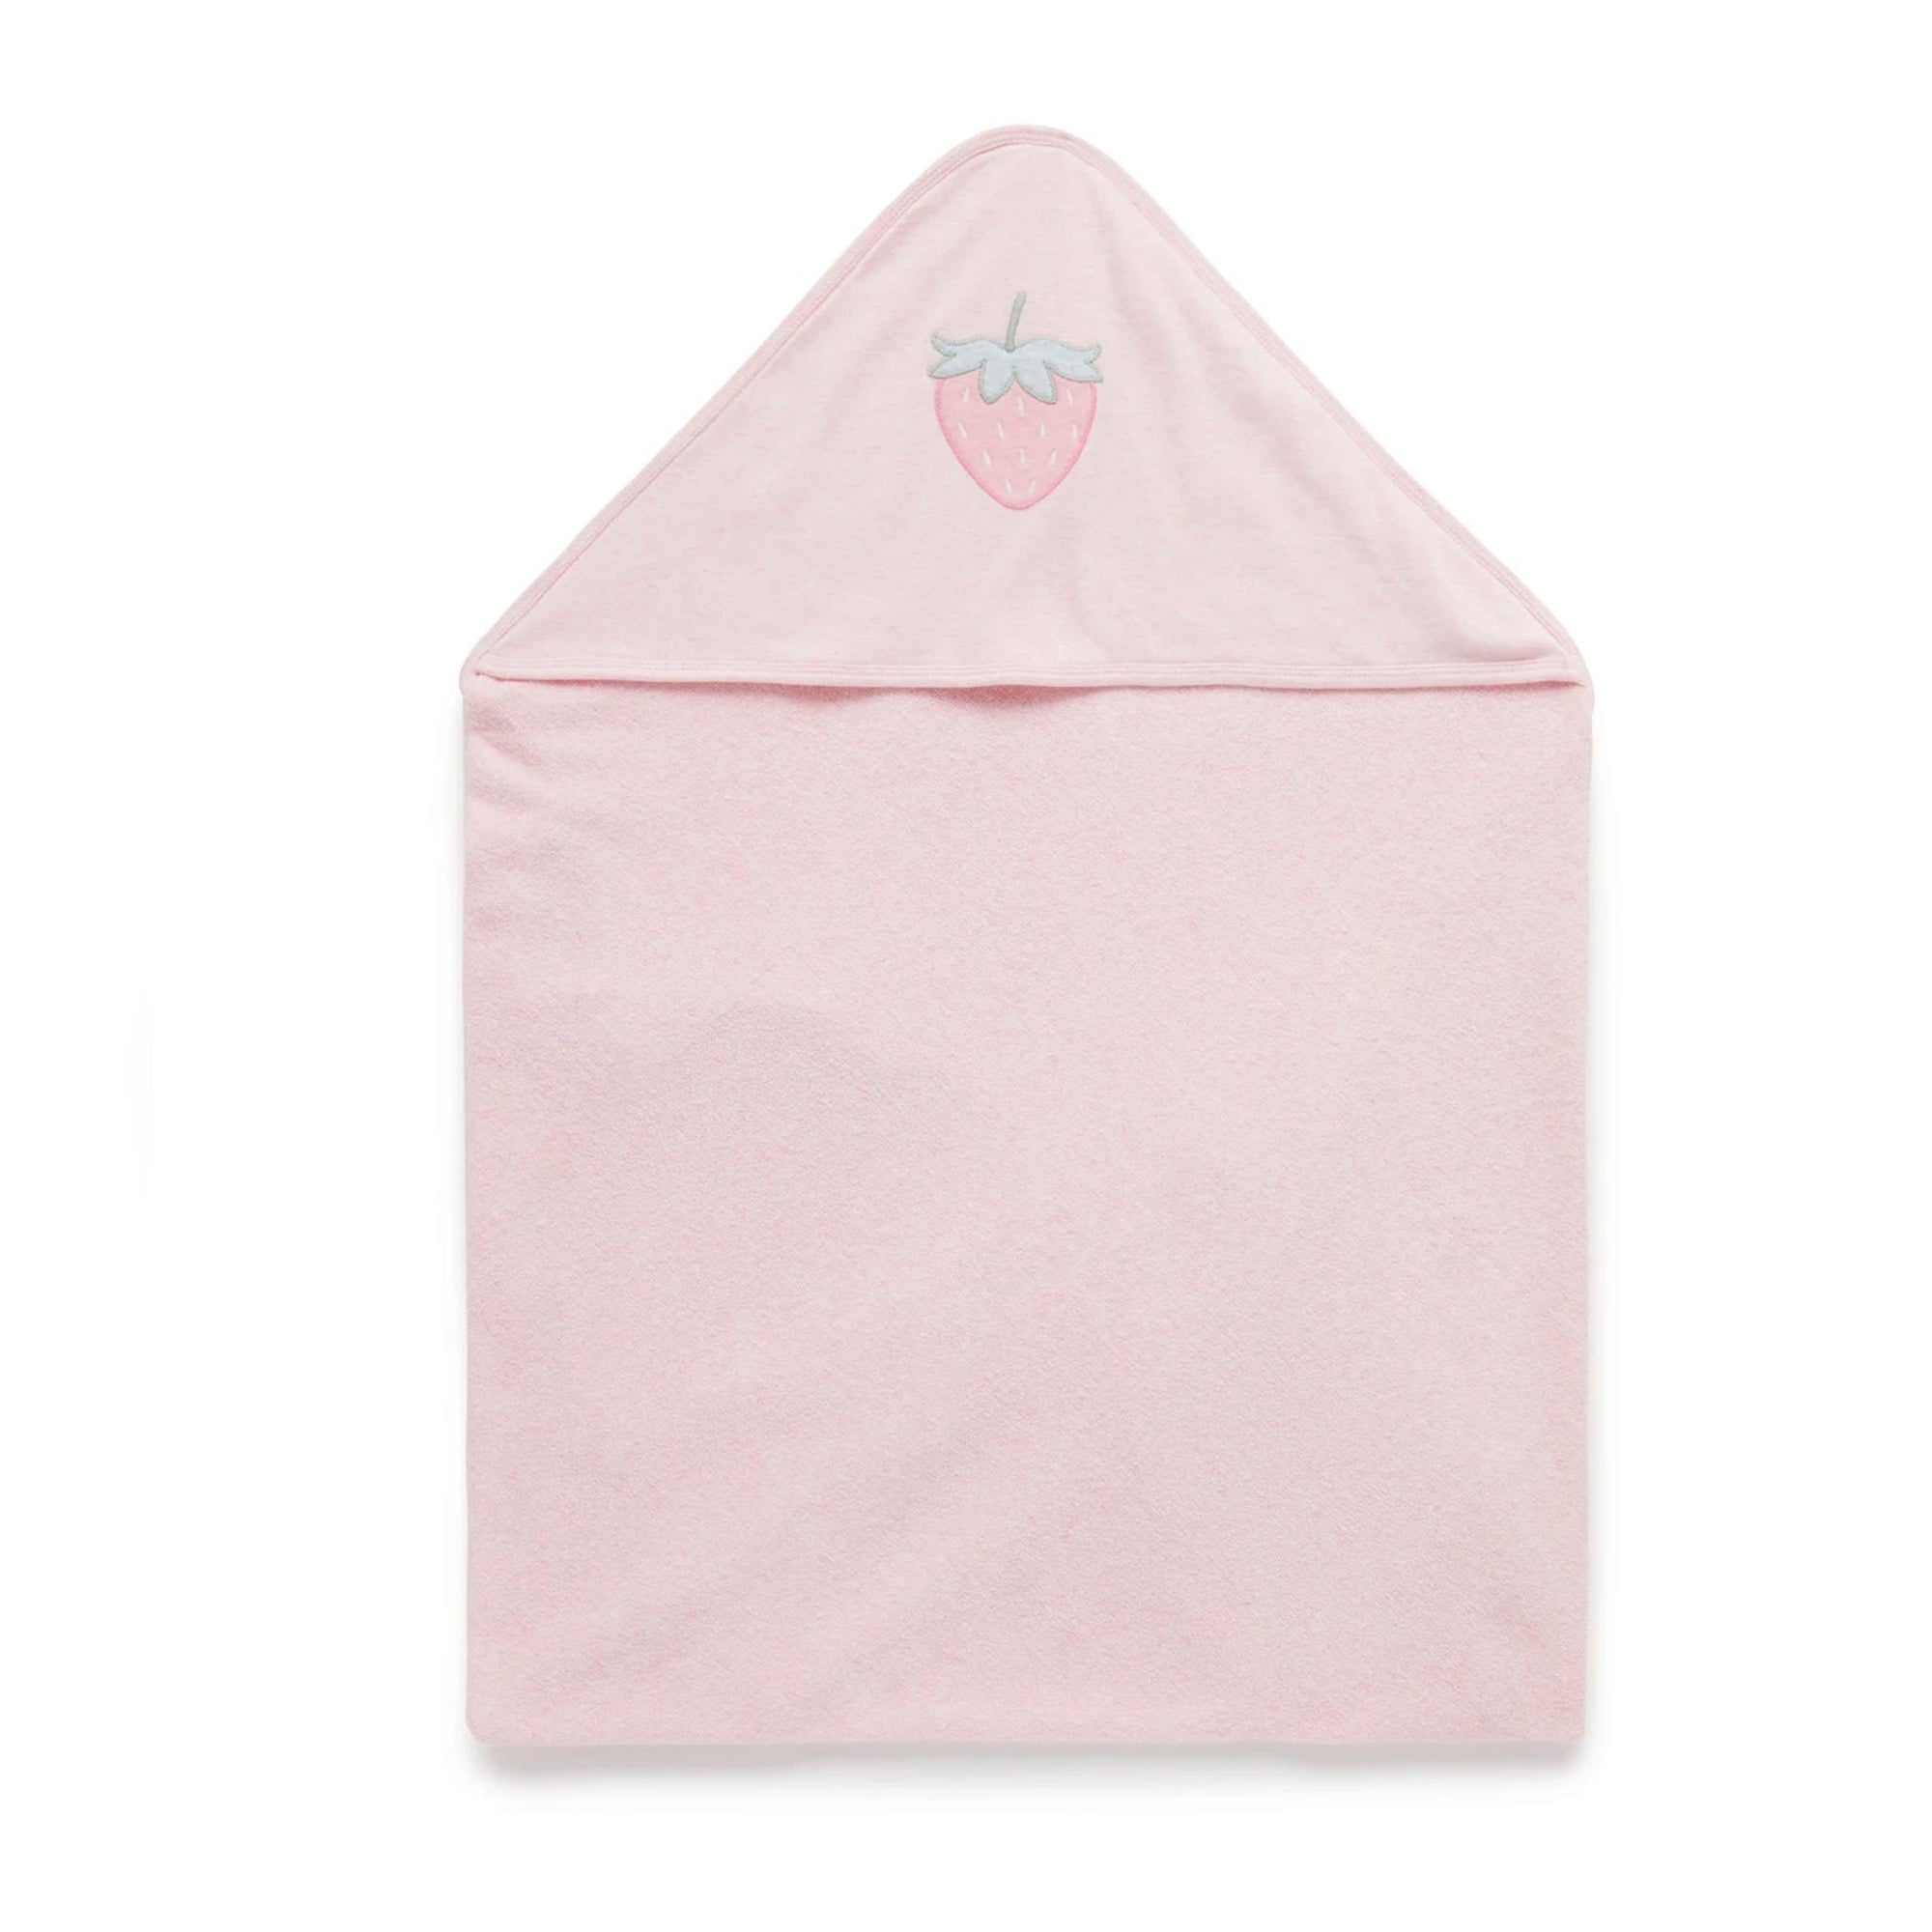 Pure Baby Hooded Towel Soft Pink Melange PH2001W20 (4688438493315)